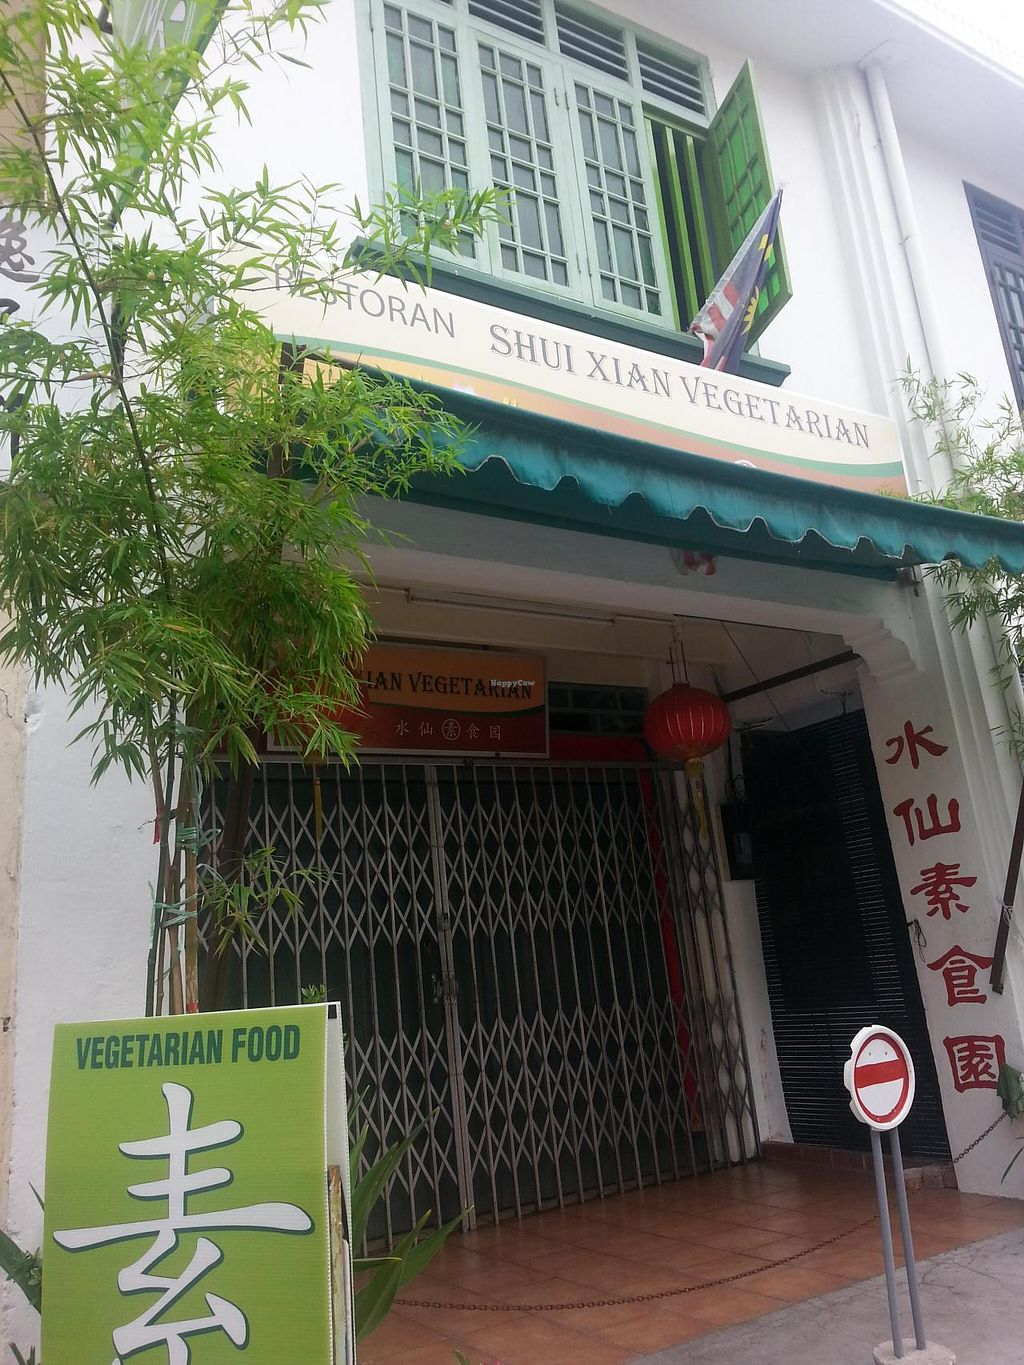 """Photo of Shui Xian Su Shi Yuan  by <a href=""""/members/profile/nerida"""">nerida</a> <br/>Closed after 2.30pm and on sunday  <br/> August 31, 2014  - <a href='/contact/abuse/image/32914/78700'>Report</a>"""